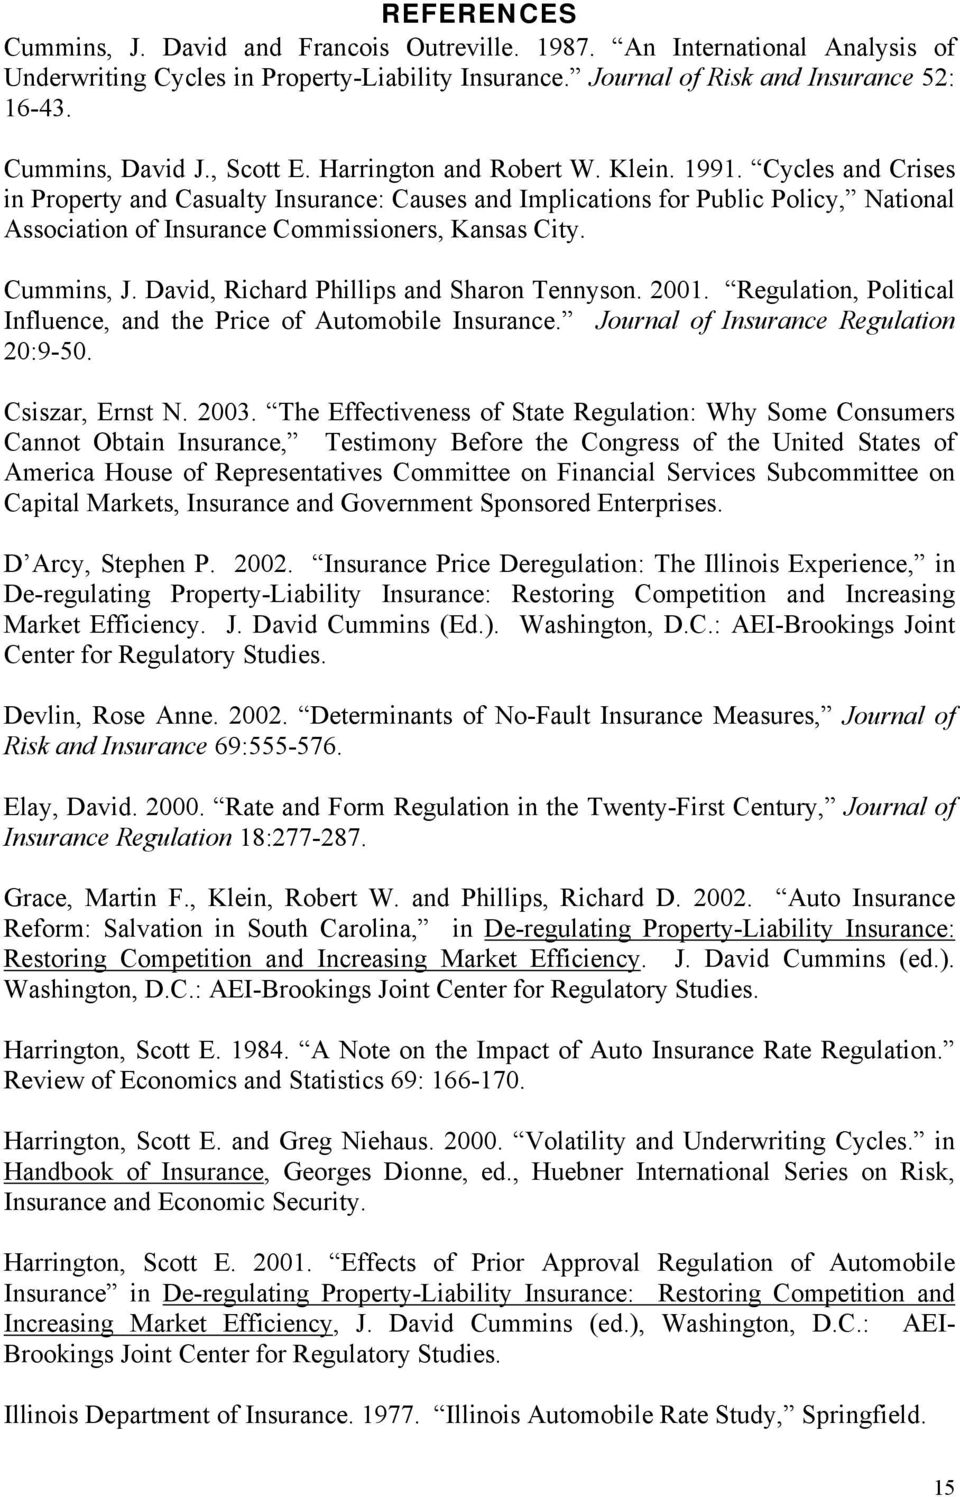 Cycles and Crises in Property and Casualty Insurance: Causes and Implications for Public Policy, National Association of Insurance Commissioners, Kansas City. Cummins, J.